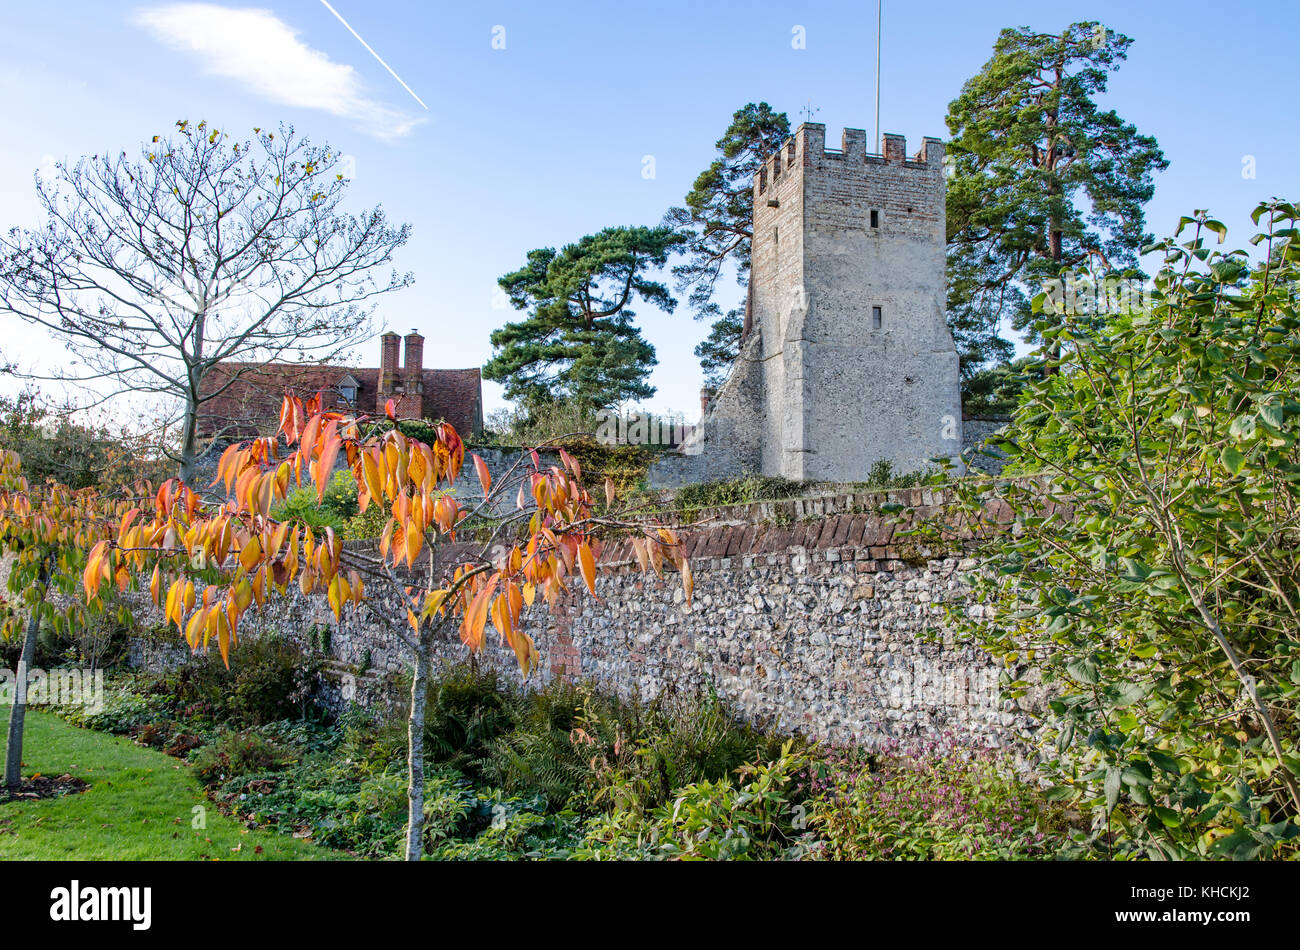 Church trees and a wall - Stock Image